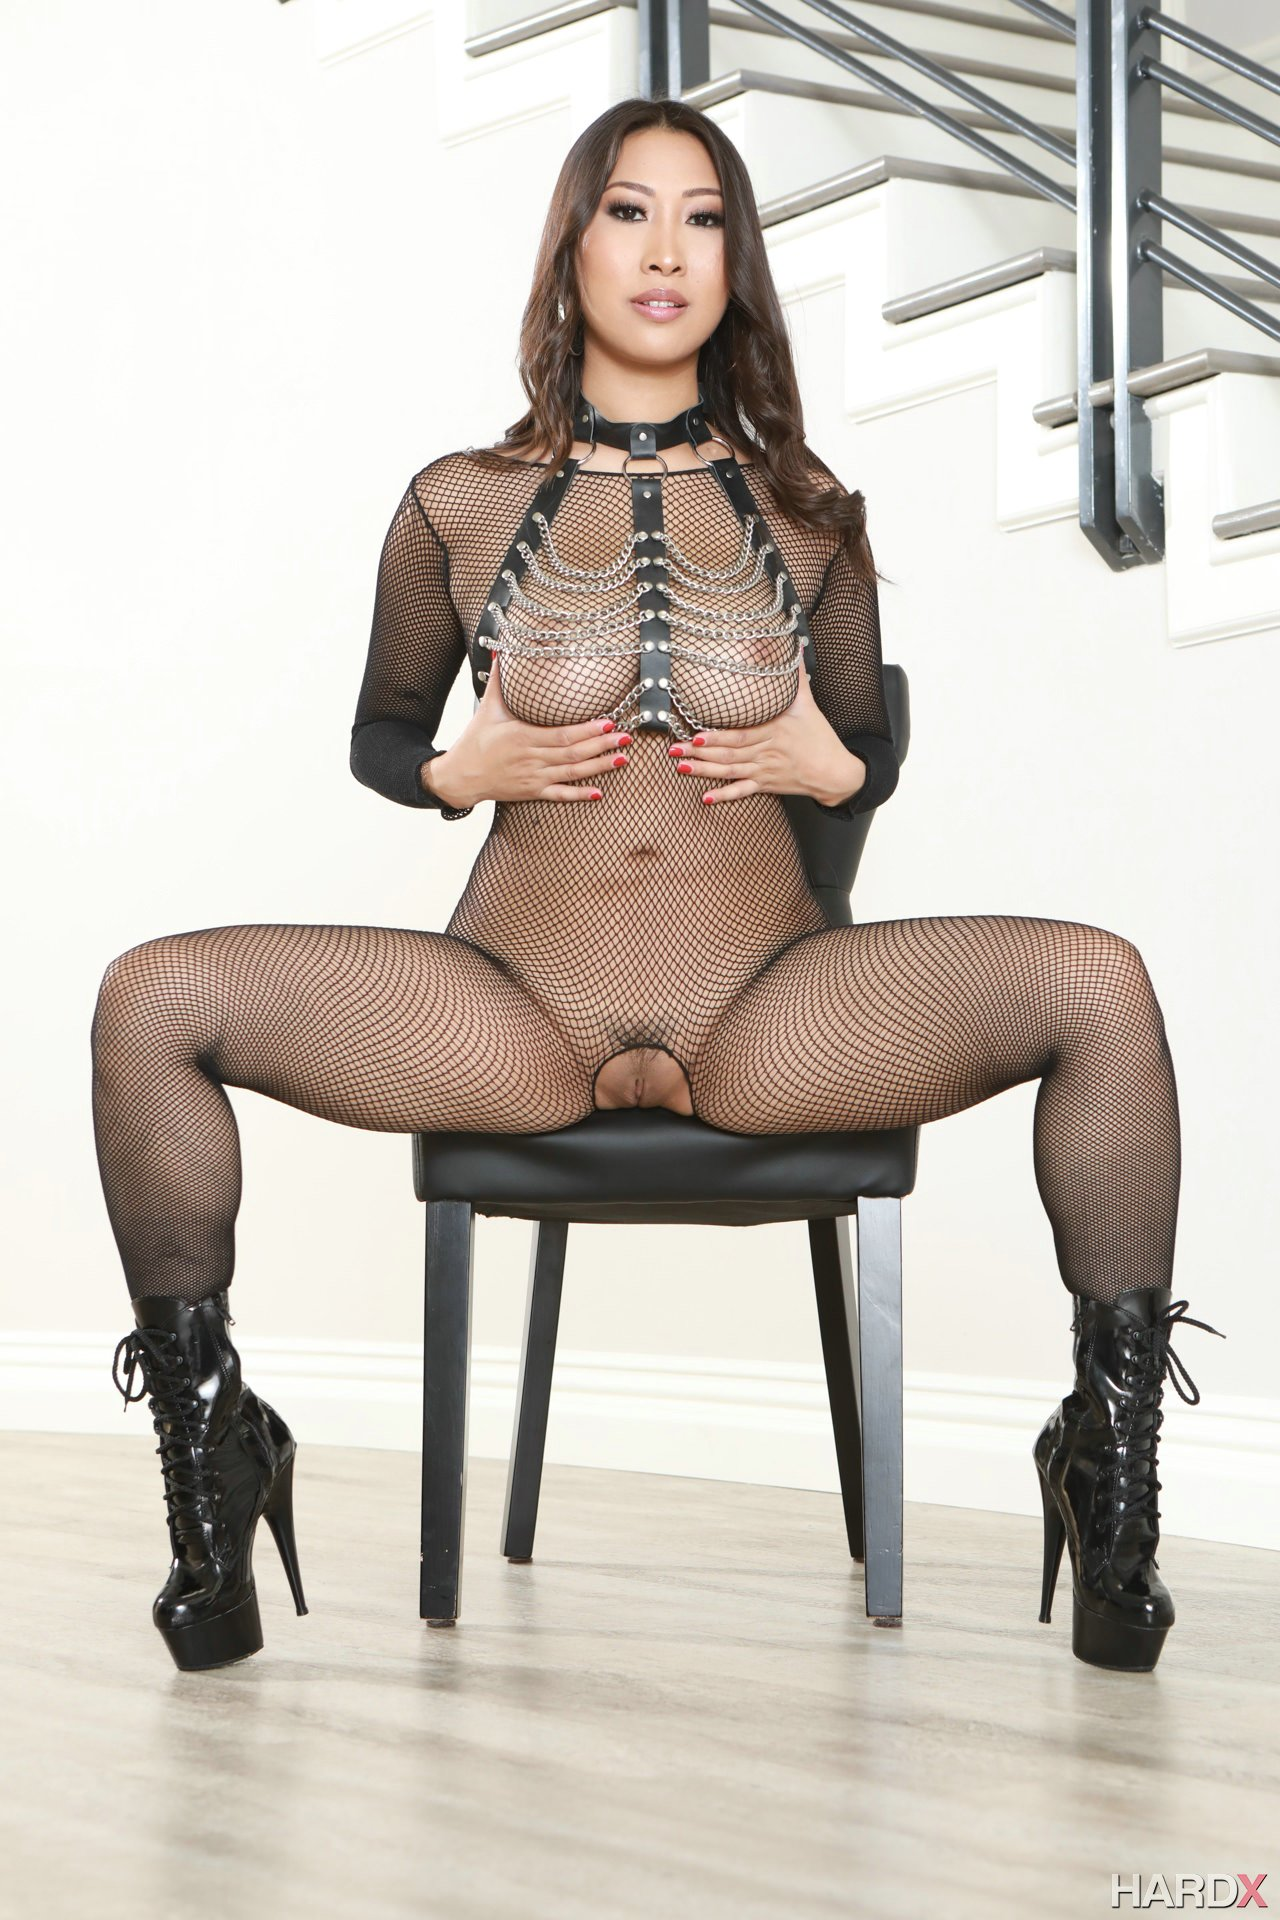 Sharon Lee in black body stockings and sexy boots exposing ...